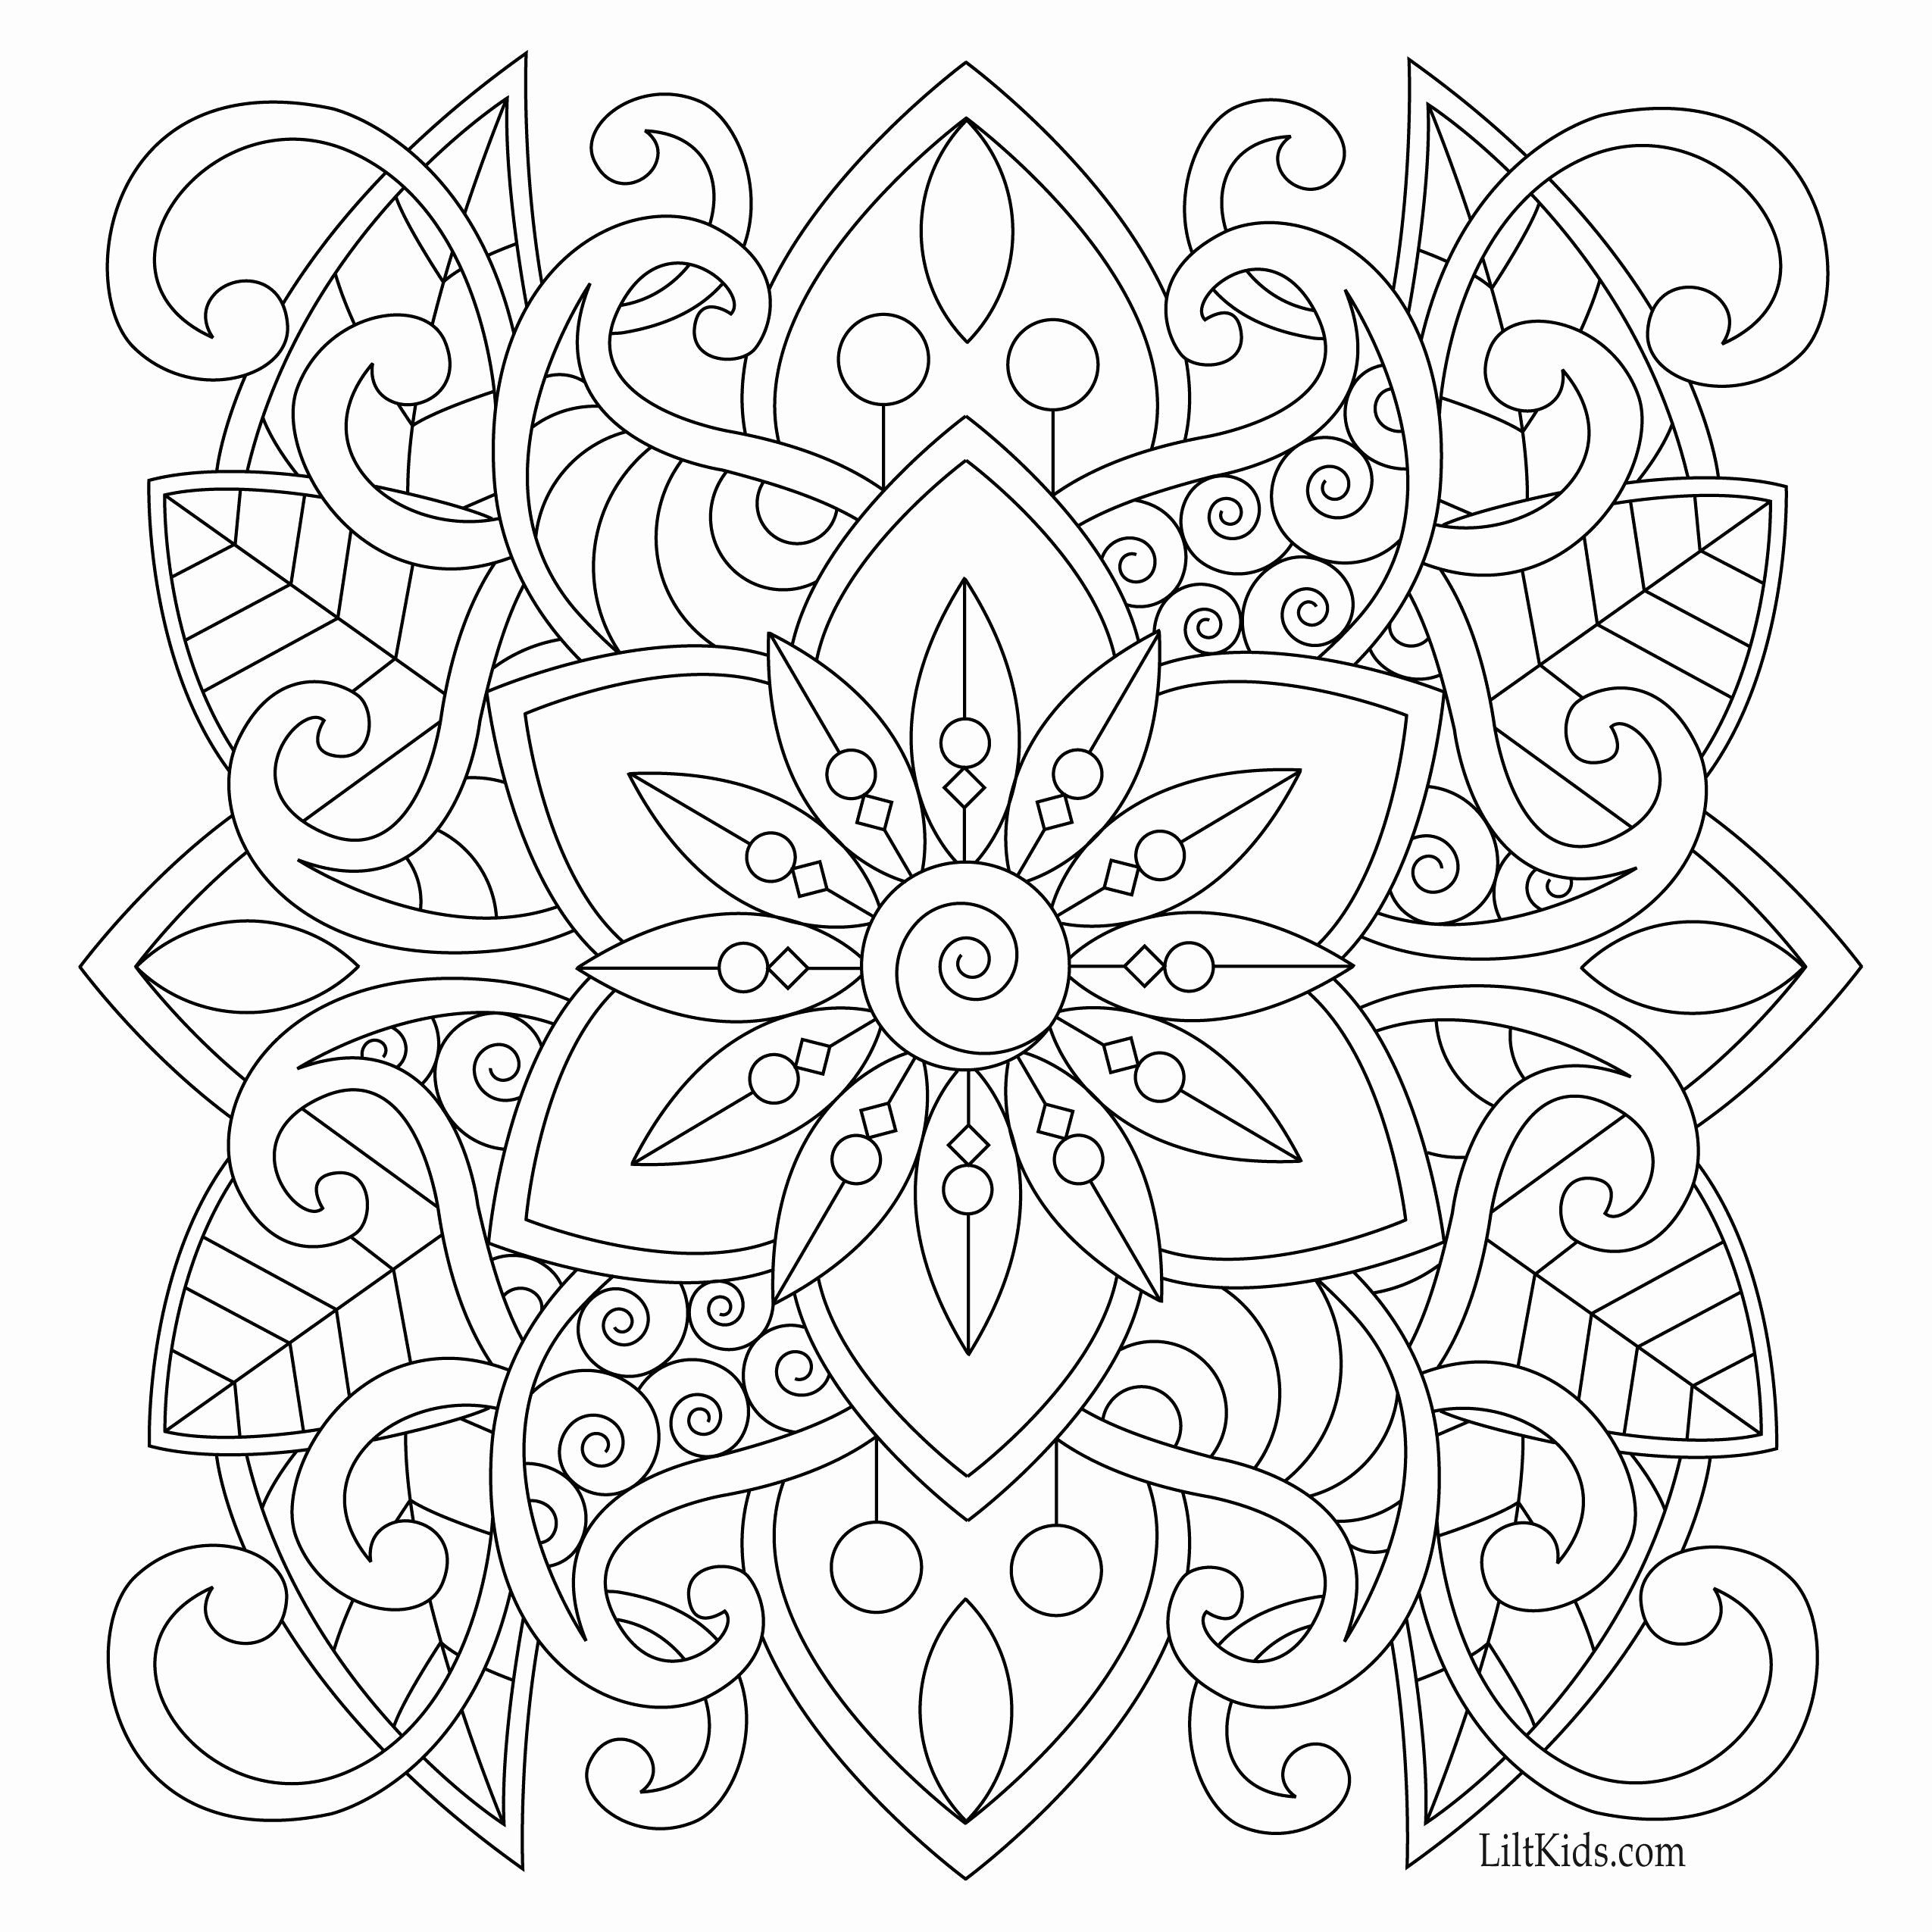 Beginners Drawing Book In 2020 Easy Coloring Pages Mandala Coloring Pages Mandala Coloring Books